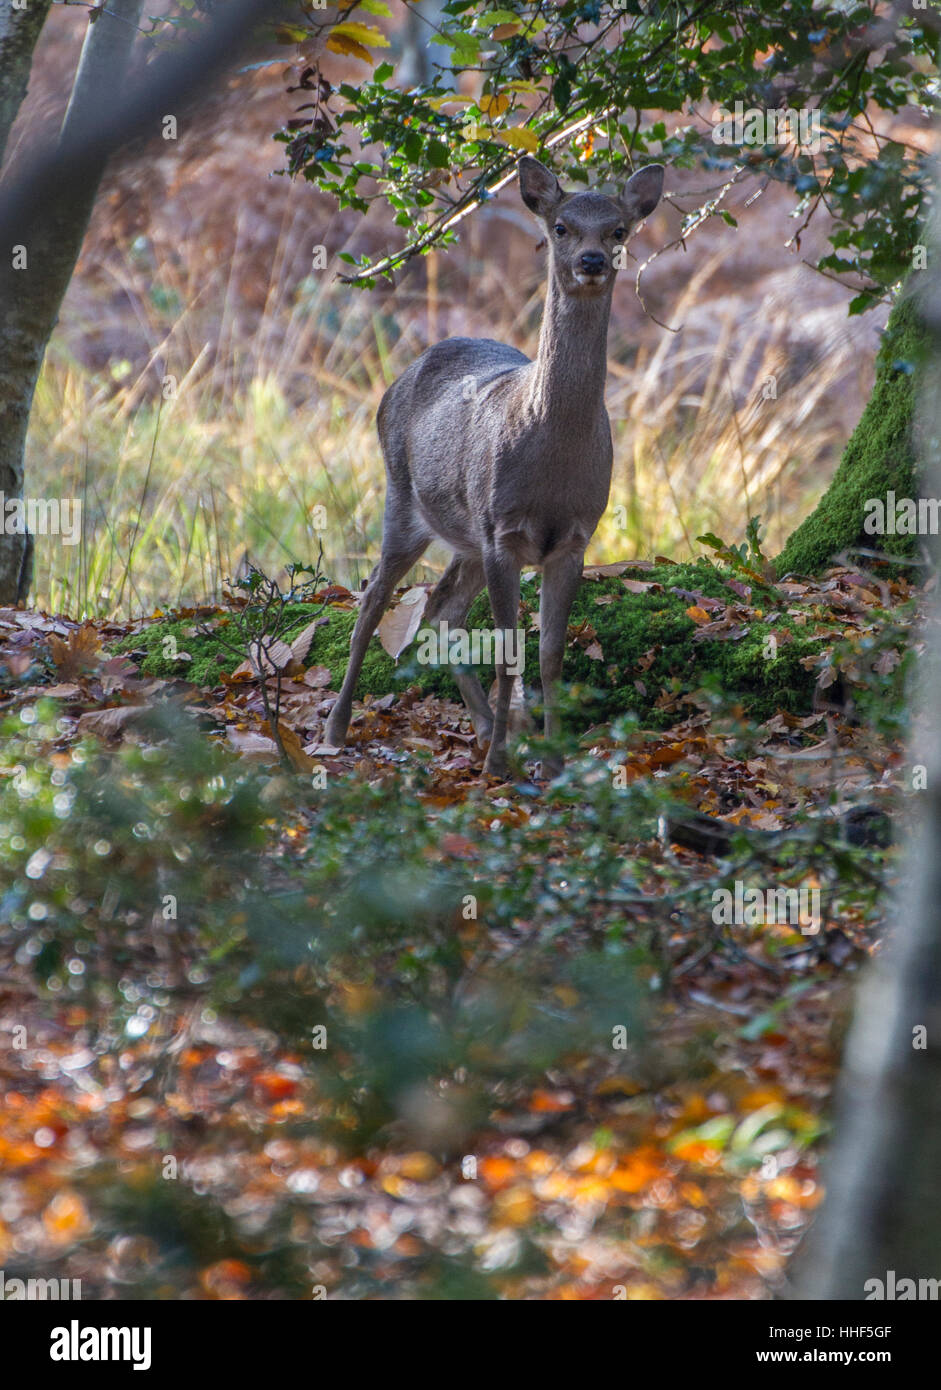 autumn in woods with leaves on ground and alert young deer watching - Stock Image